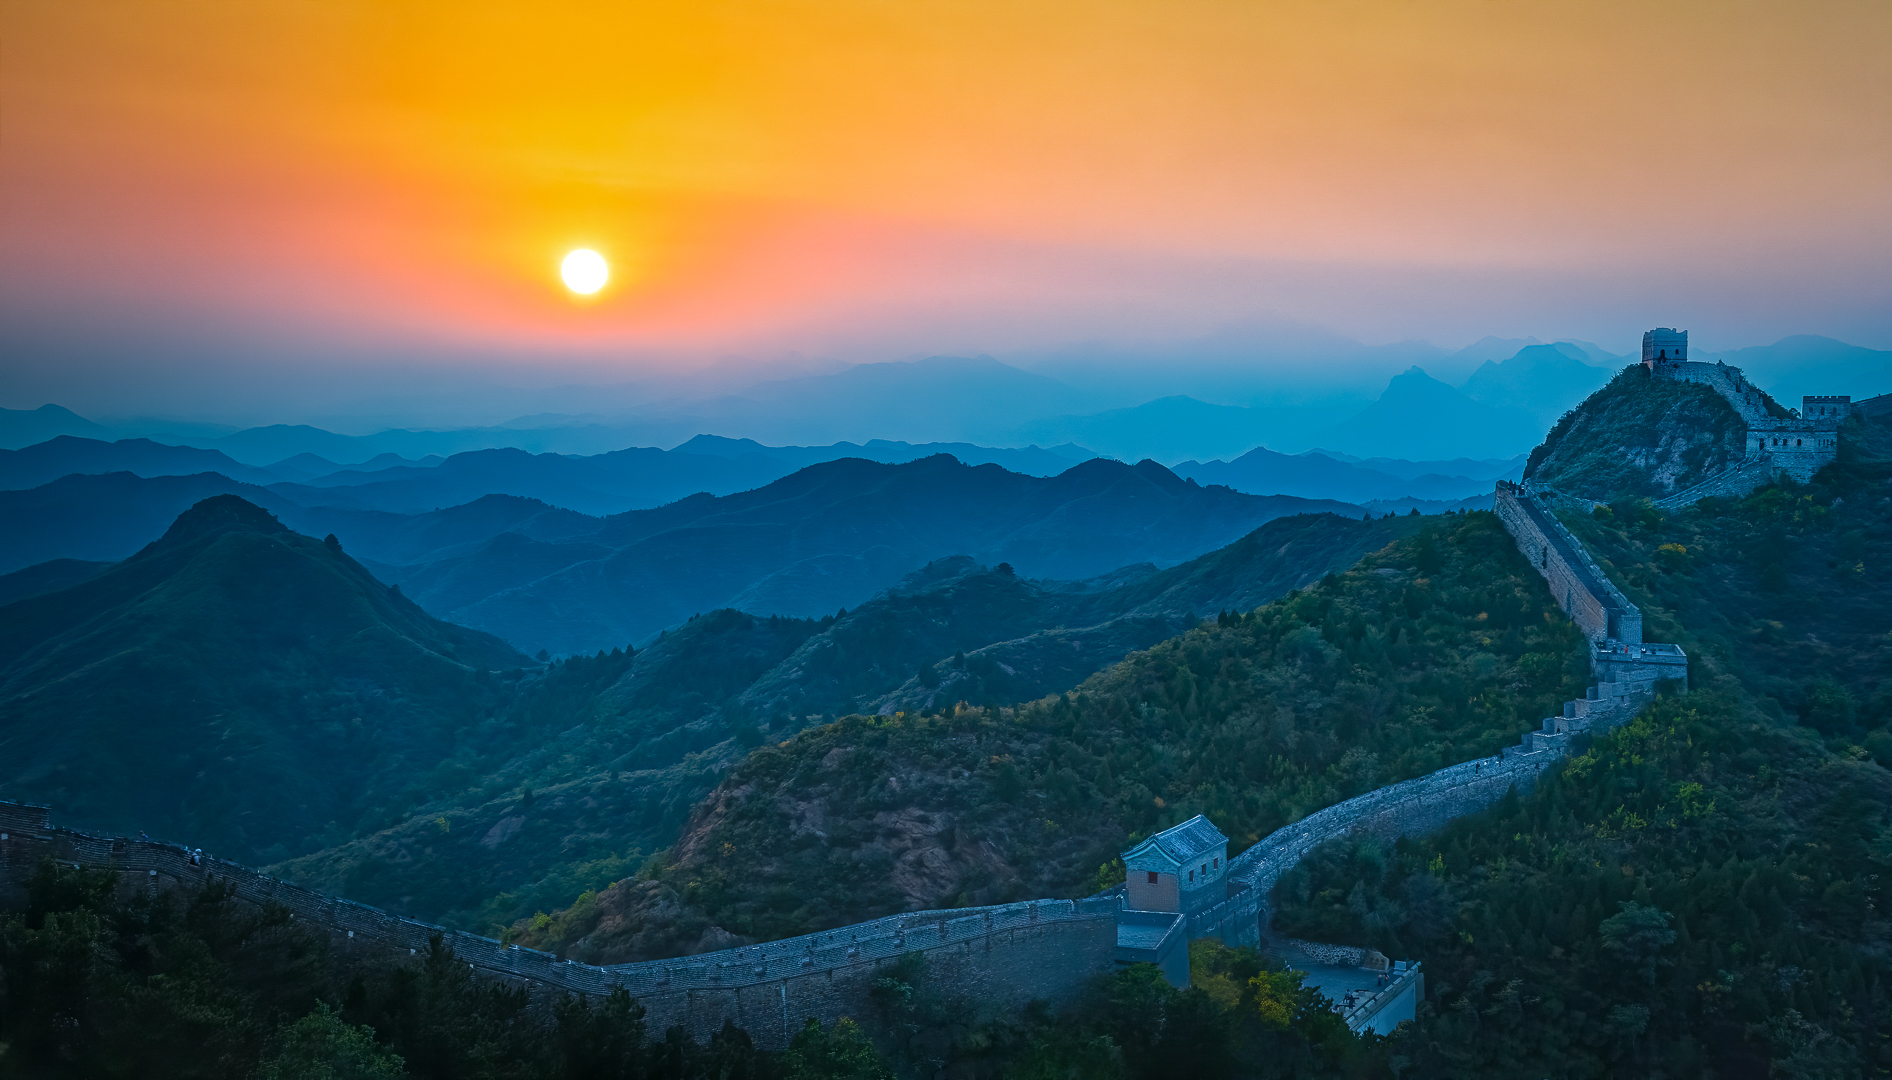 Misty Sunset at the Great Wall